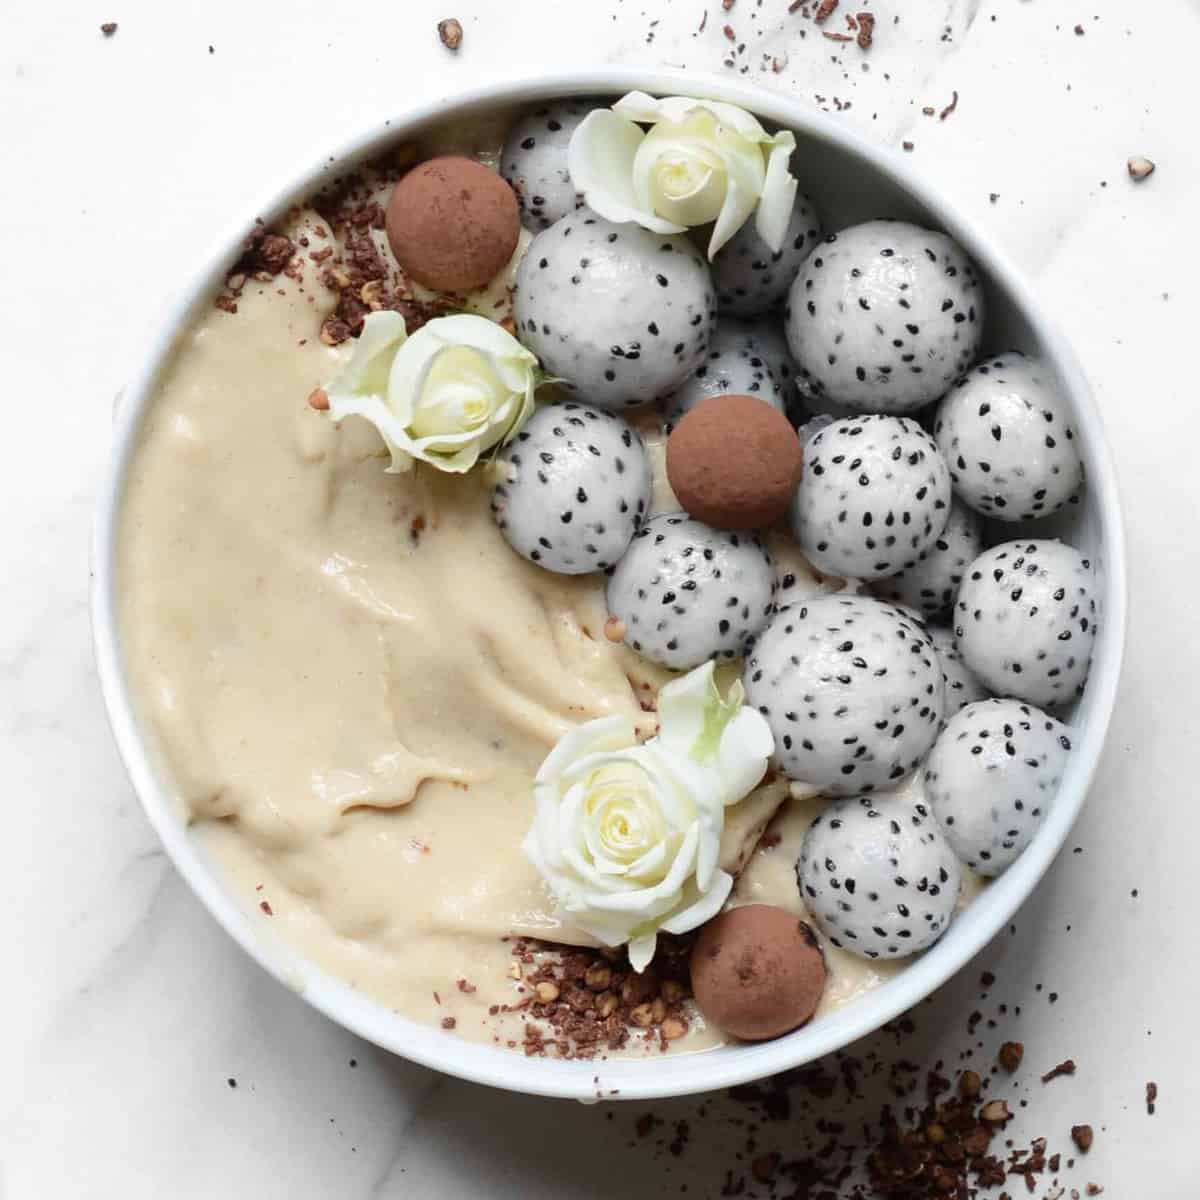 healthy salted caramel vegan smoothie bowl with dragonfruit and cacao protein balls. a delicious dessert smoothie